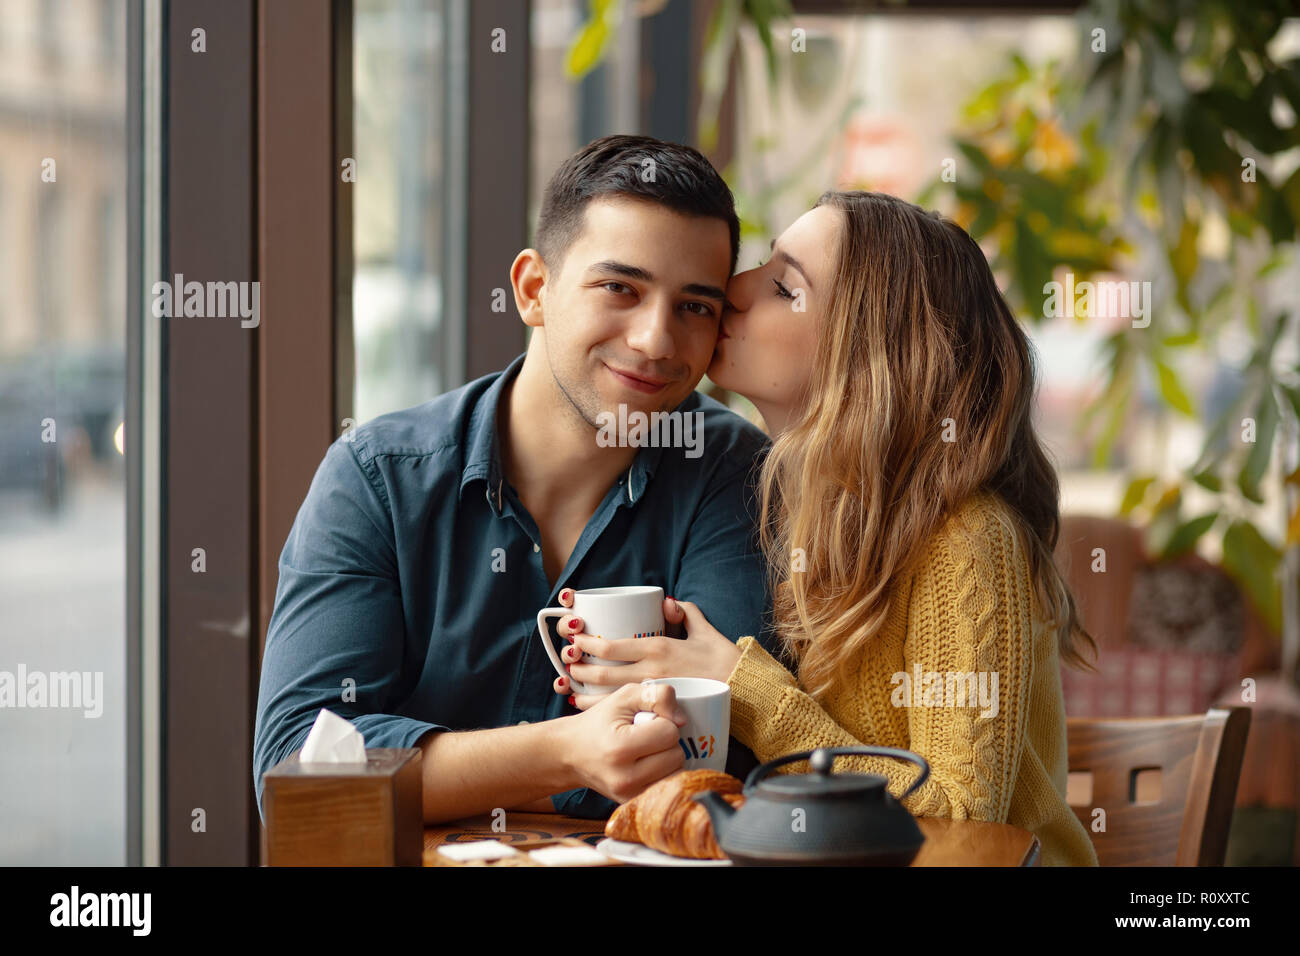 Young attractive couple on date in coffee shop. Woman kissing her men on the cheek with affection Stock Photo - Alamy